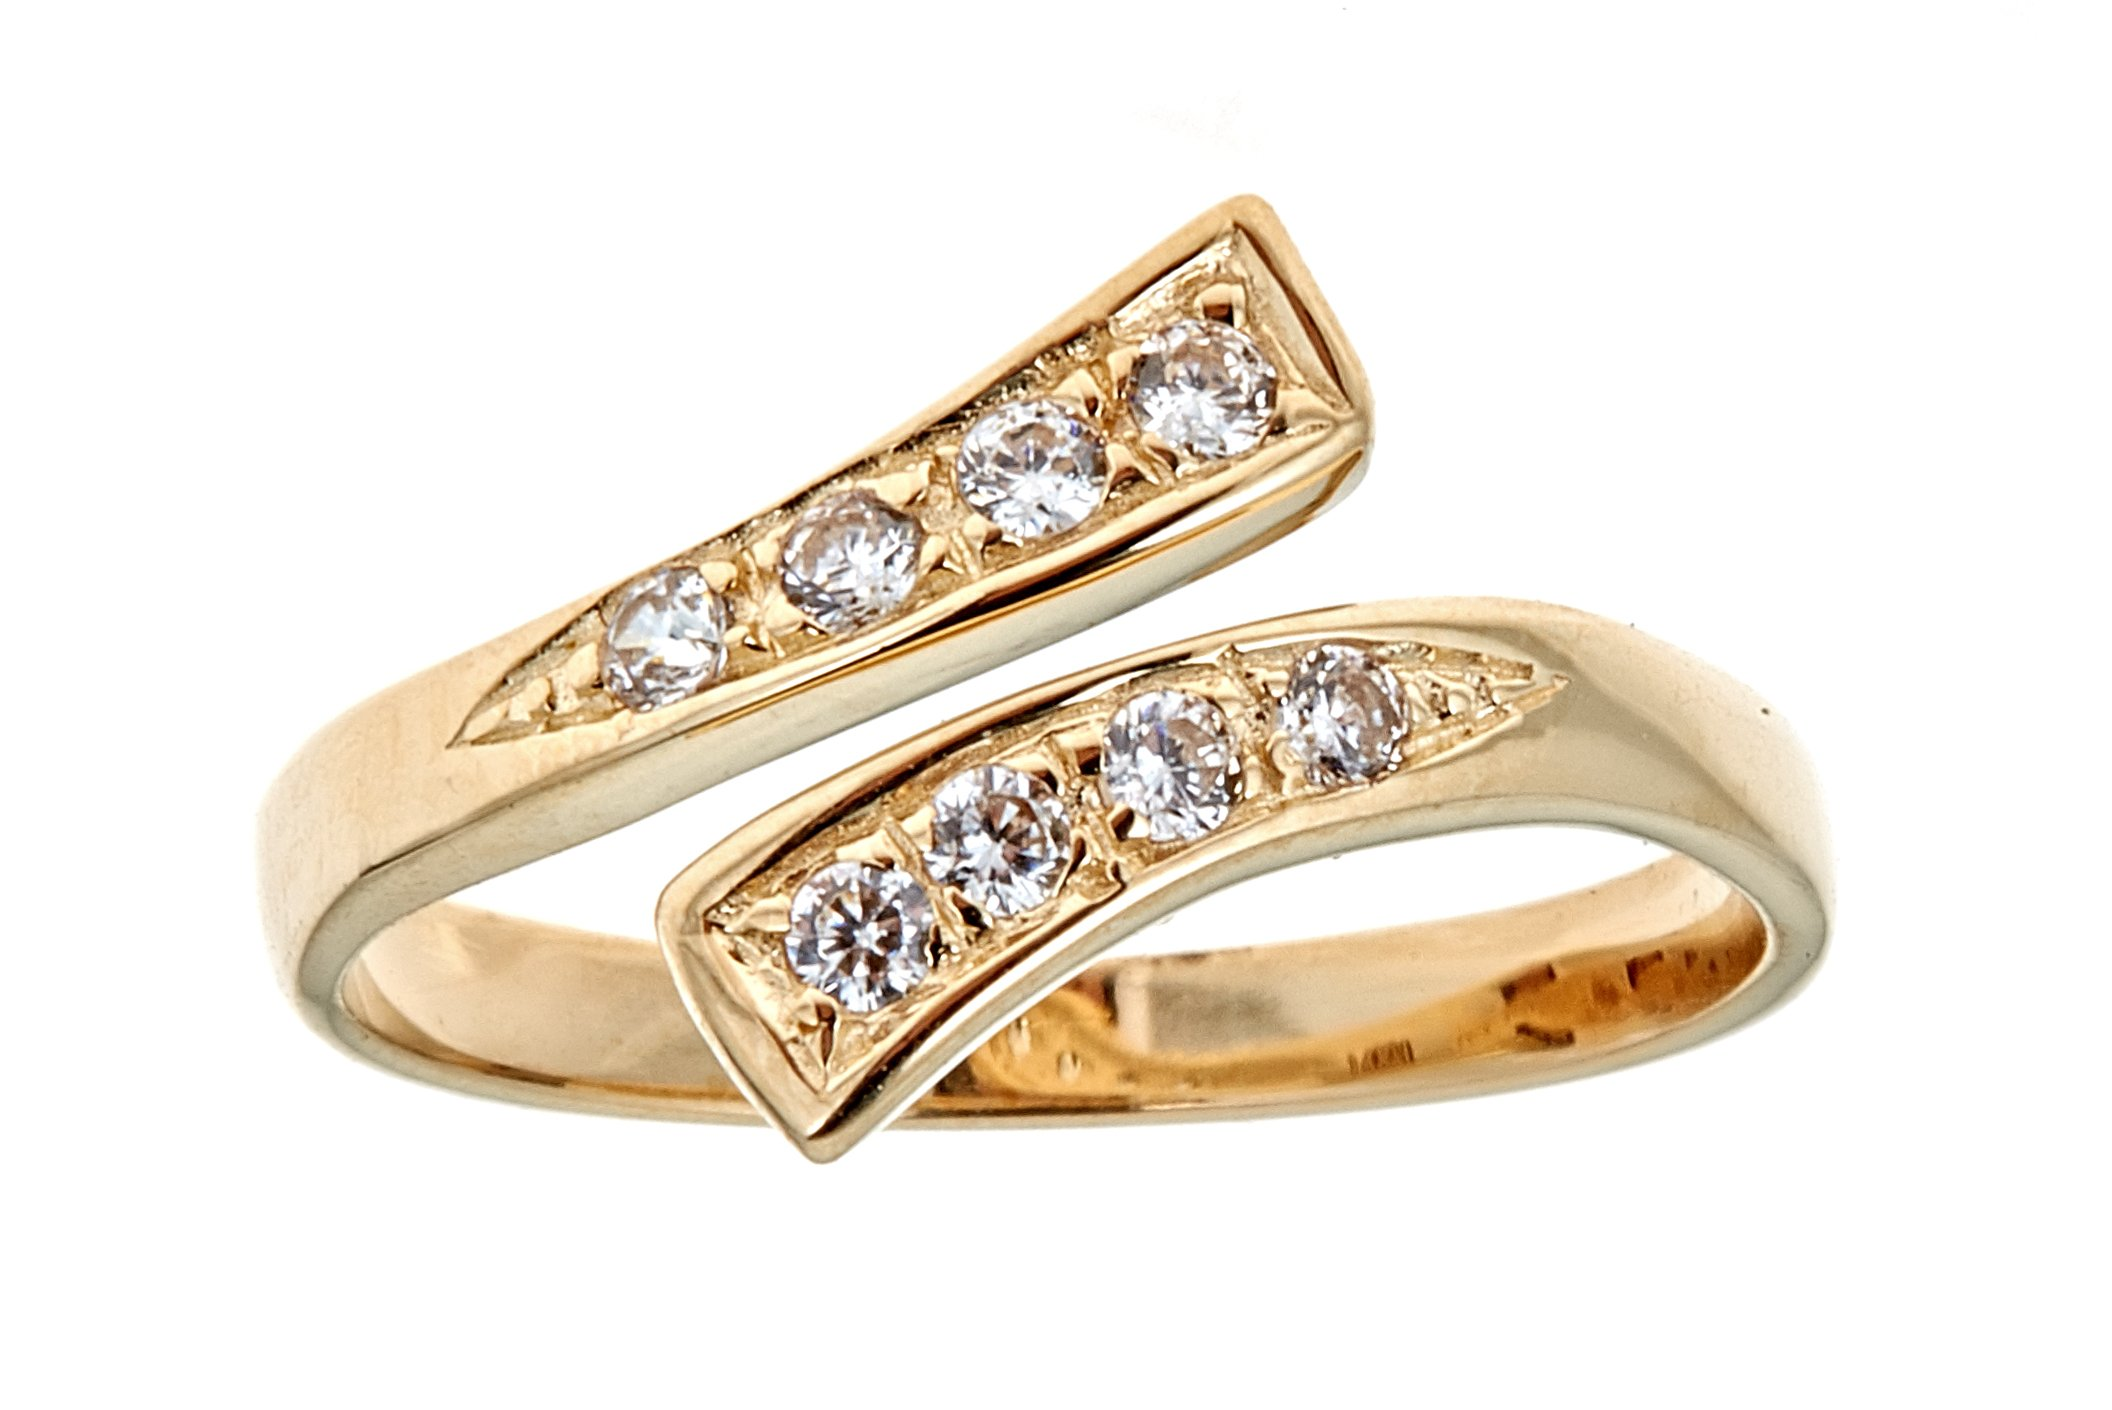 Ritastephens 14k Solid Yellow Gold Cubic Zirconia Crossover Toe Ring or Ring by Ritastephens